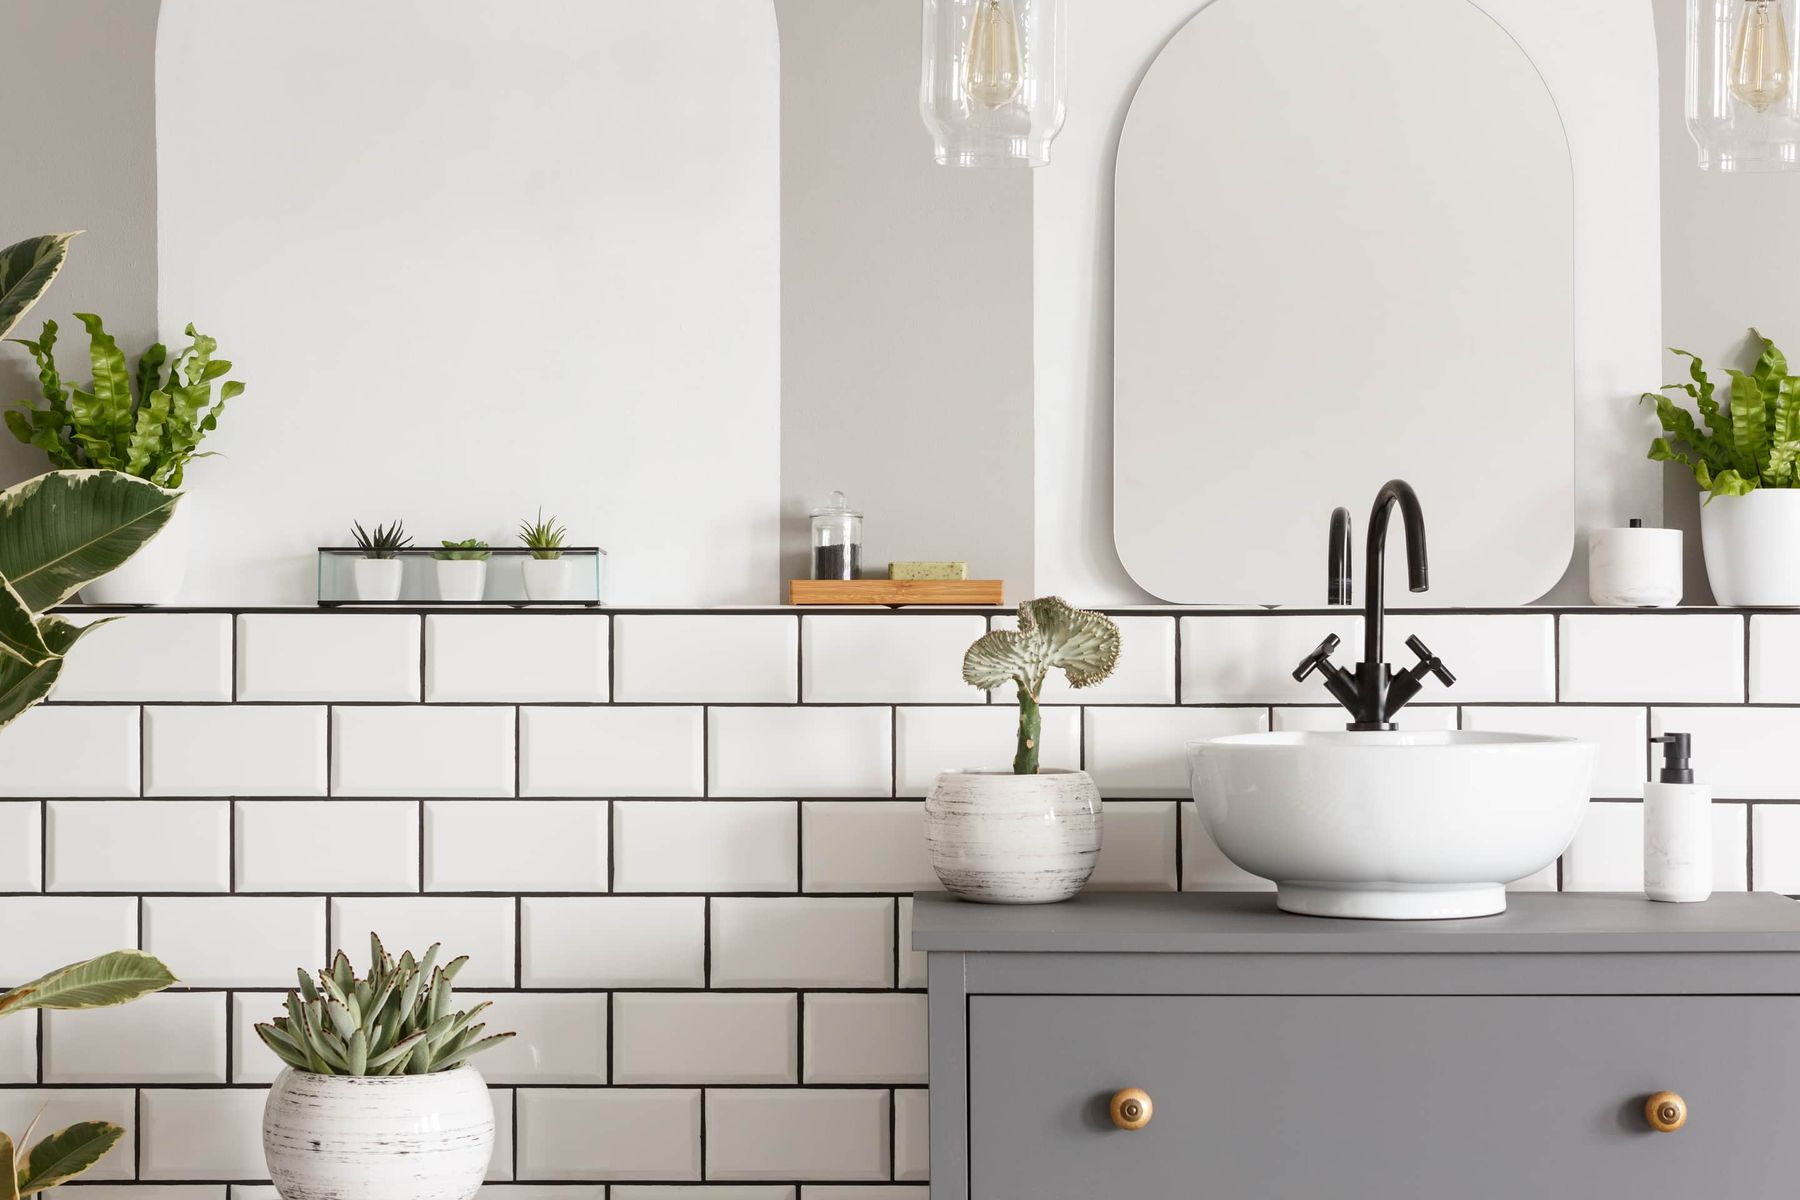 Follow these simple steps to keep your washbasin clean and germ-free!